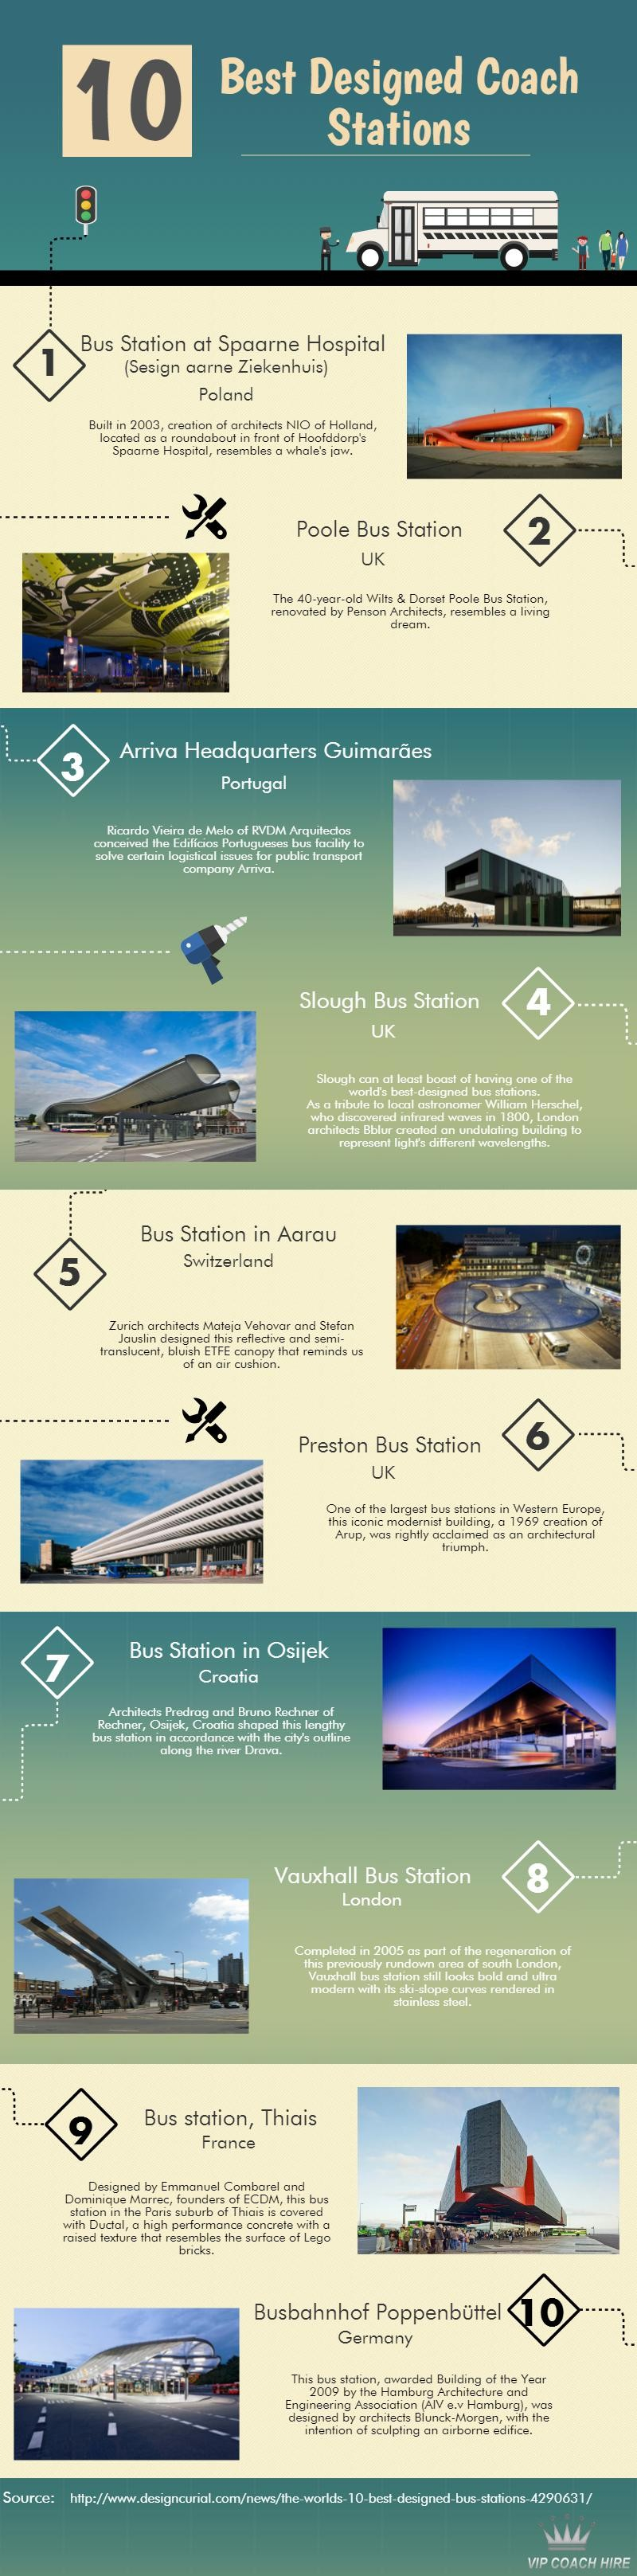 Top 10 Best Designed Coach Station [Infographic]